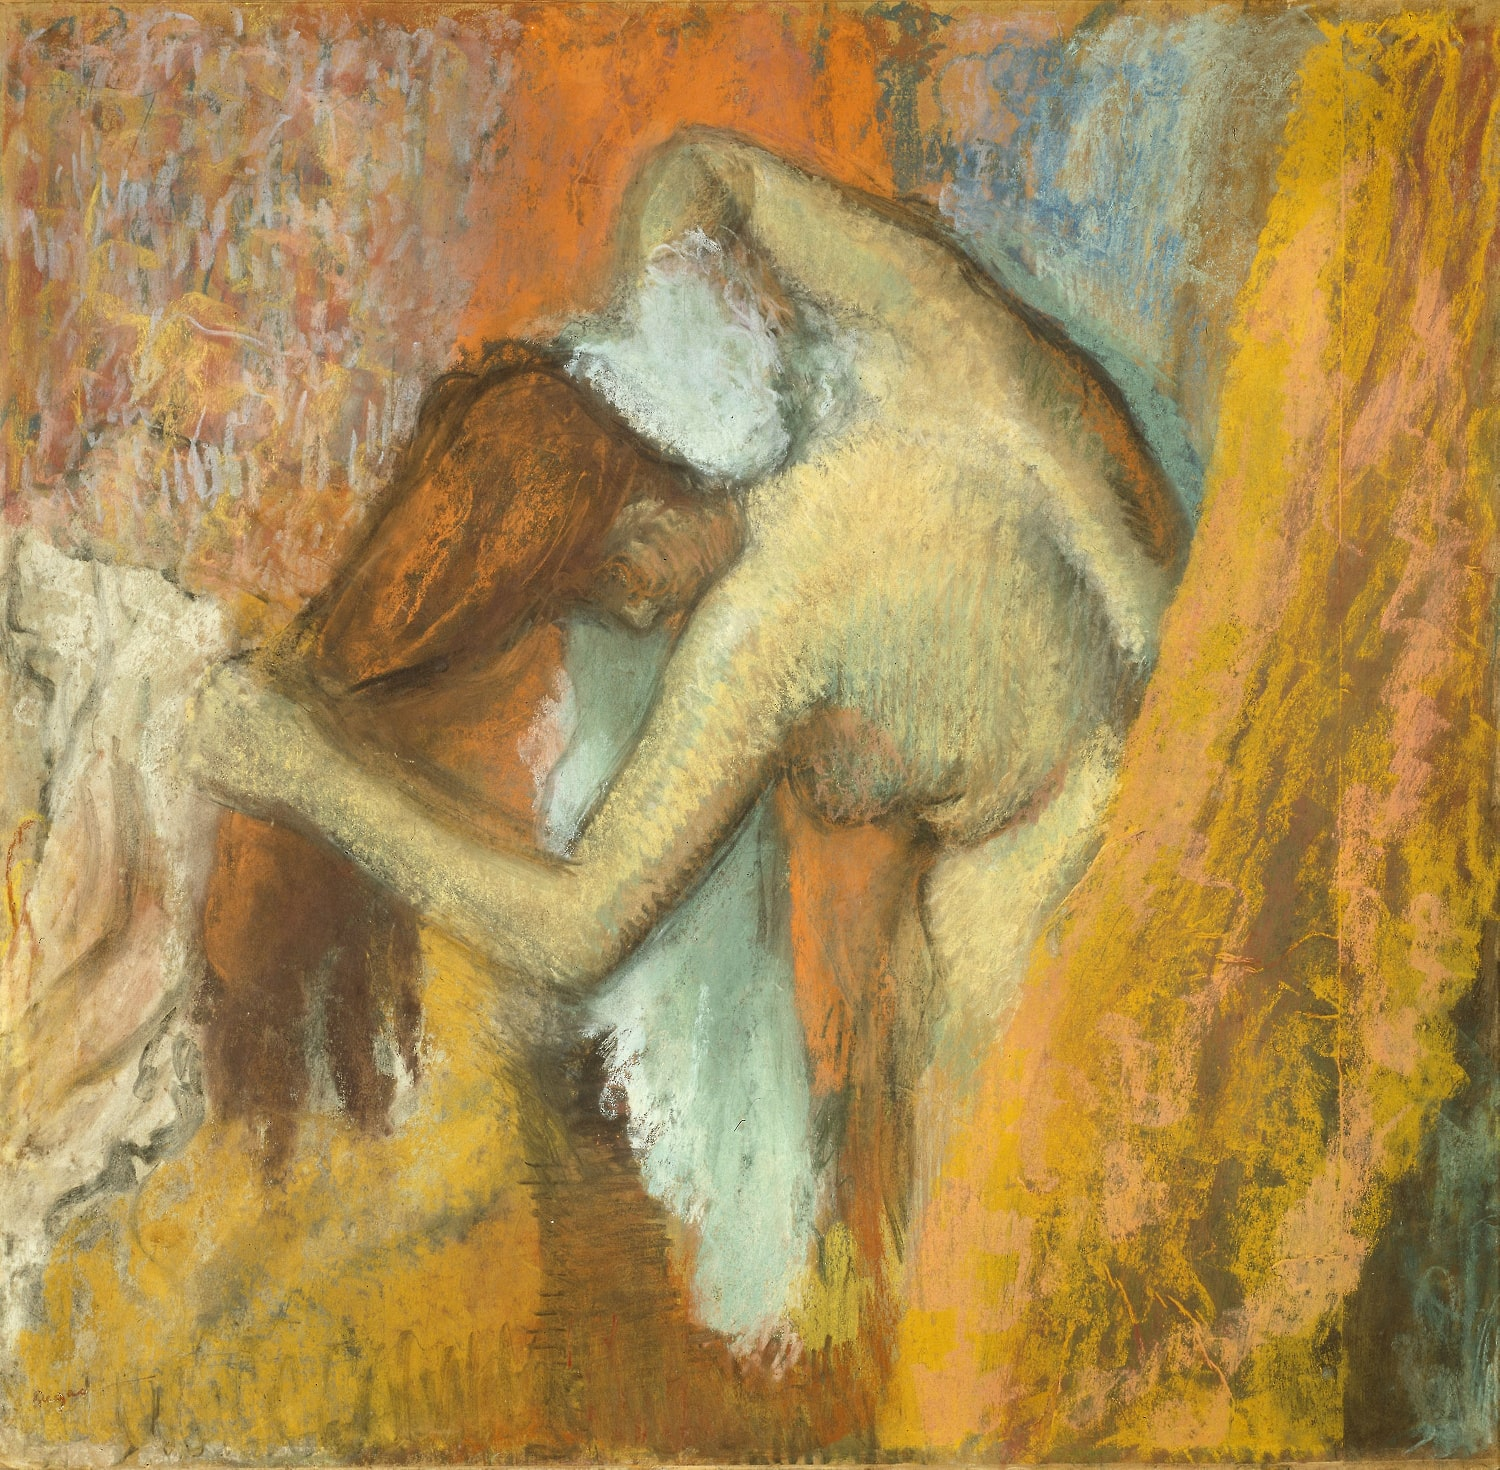 A woman dries herself vigorously. Her towel rubs the back of her neck as she holds her auburn hair free. A curtain, a chair and some wallpaper are seen in the background. Colours express and suggest form rather than accurately portraying it.